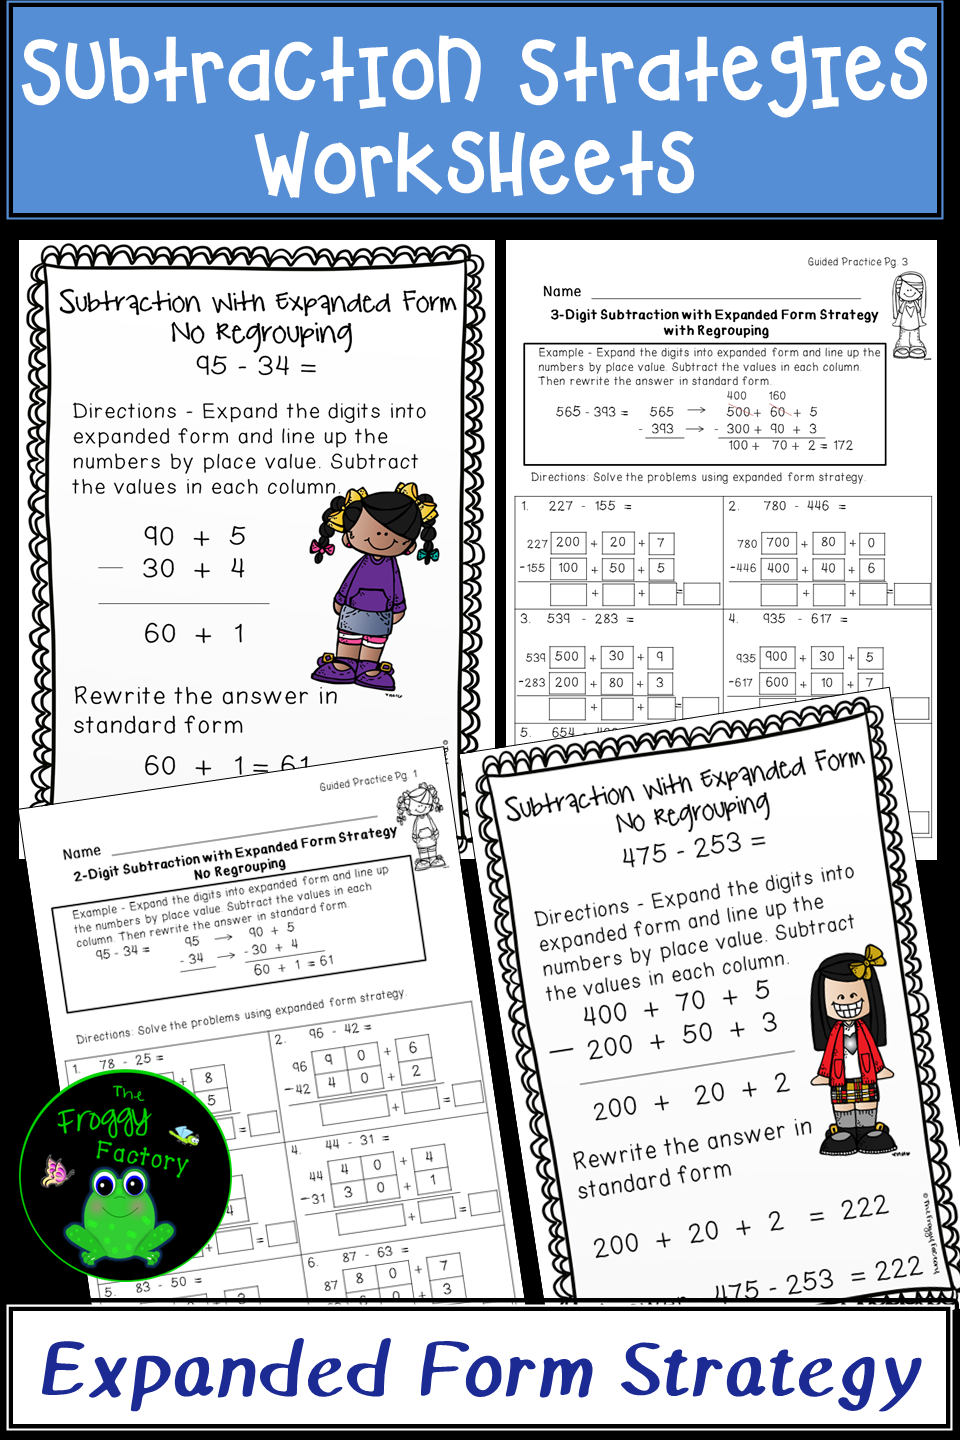 Subtraction Strategies Worksheets - Expanded Form Bundle Volume 1